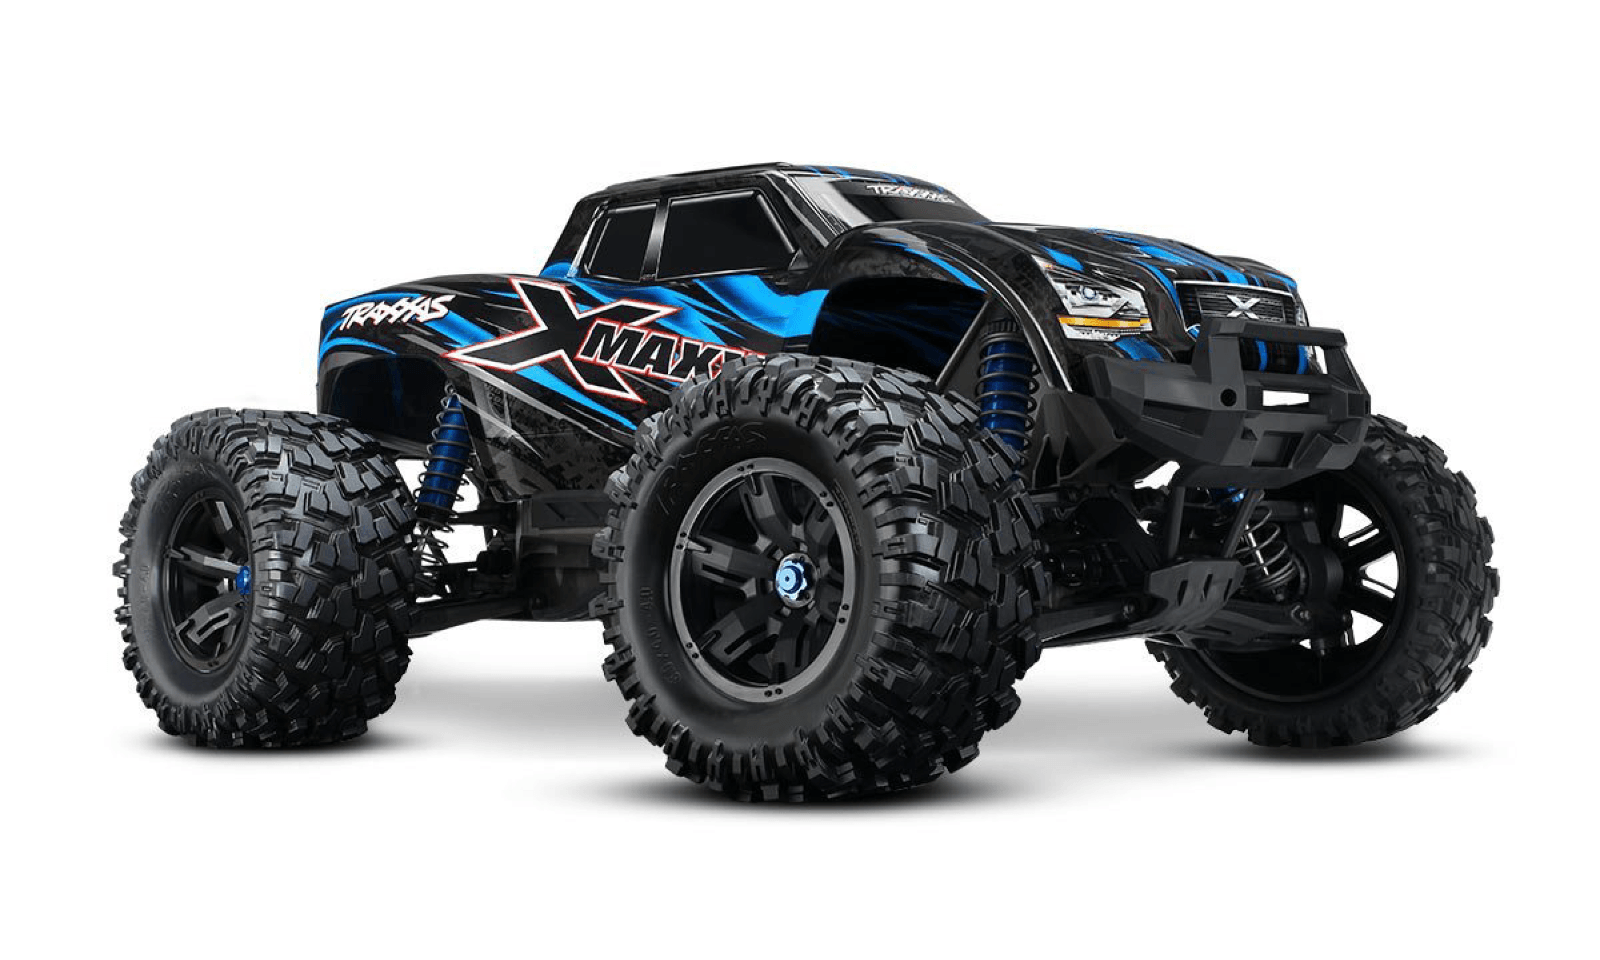 best electric rc cars with Traxxas X Maxx Review on 3926 as well Traxxas Rustler Xl5 110 2wd Stadium Truck 37054 P 5516 moreover Rc Remote Control Ebay as well 27586 Dinka Jester also Ride On 12 Volt.